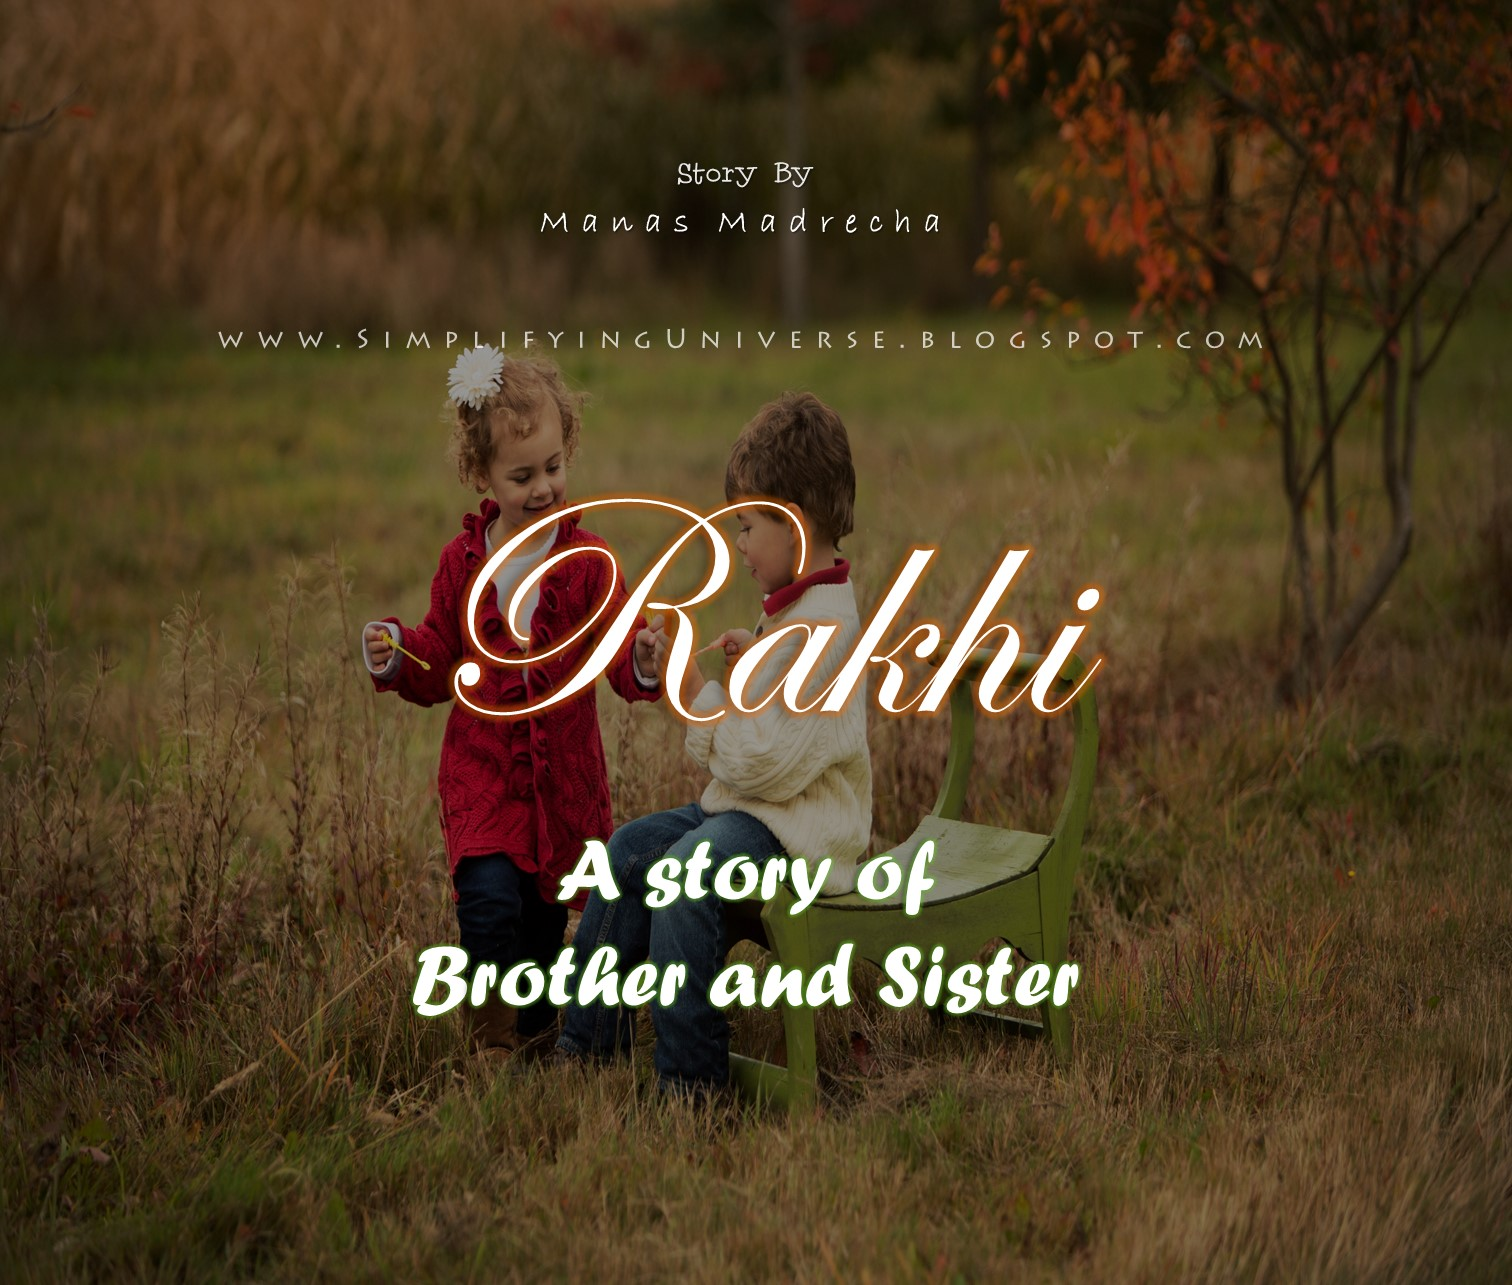 Brother And Sister Love Quotes Gorgeous Rakhi  A Story Of Brother And Sister  Manas Madrecha